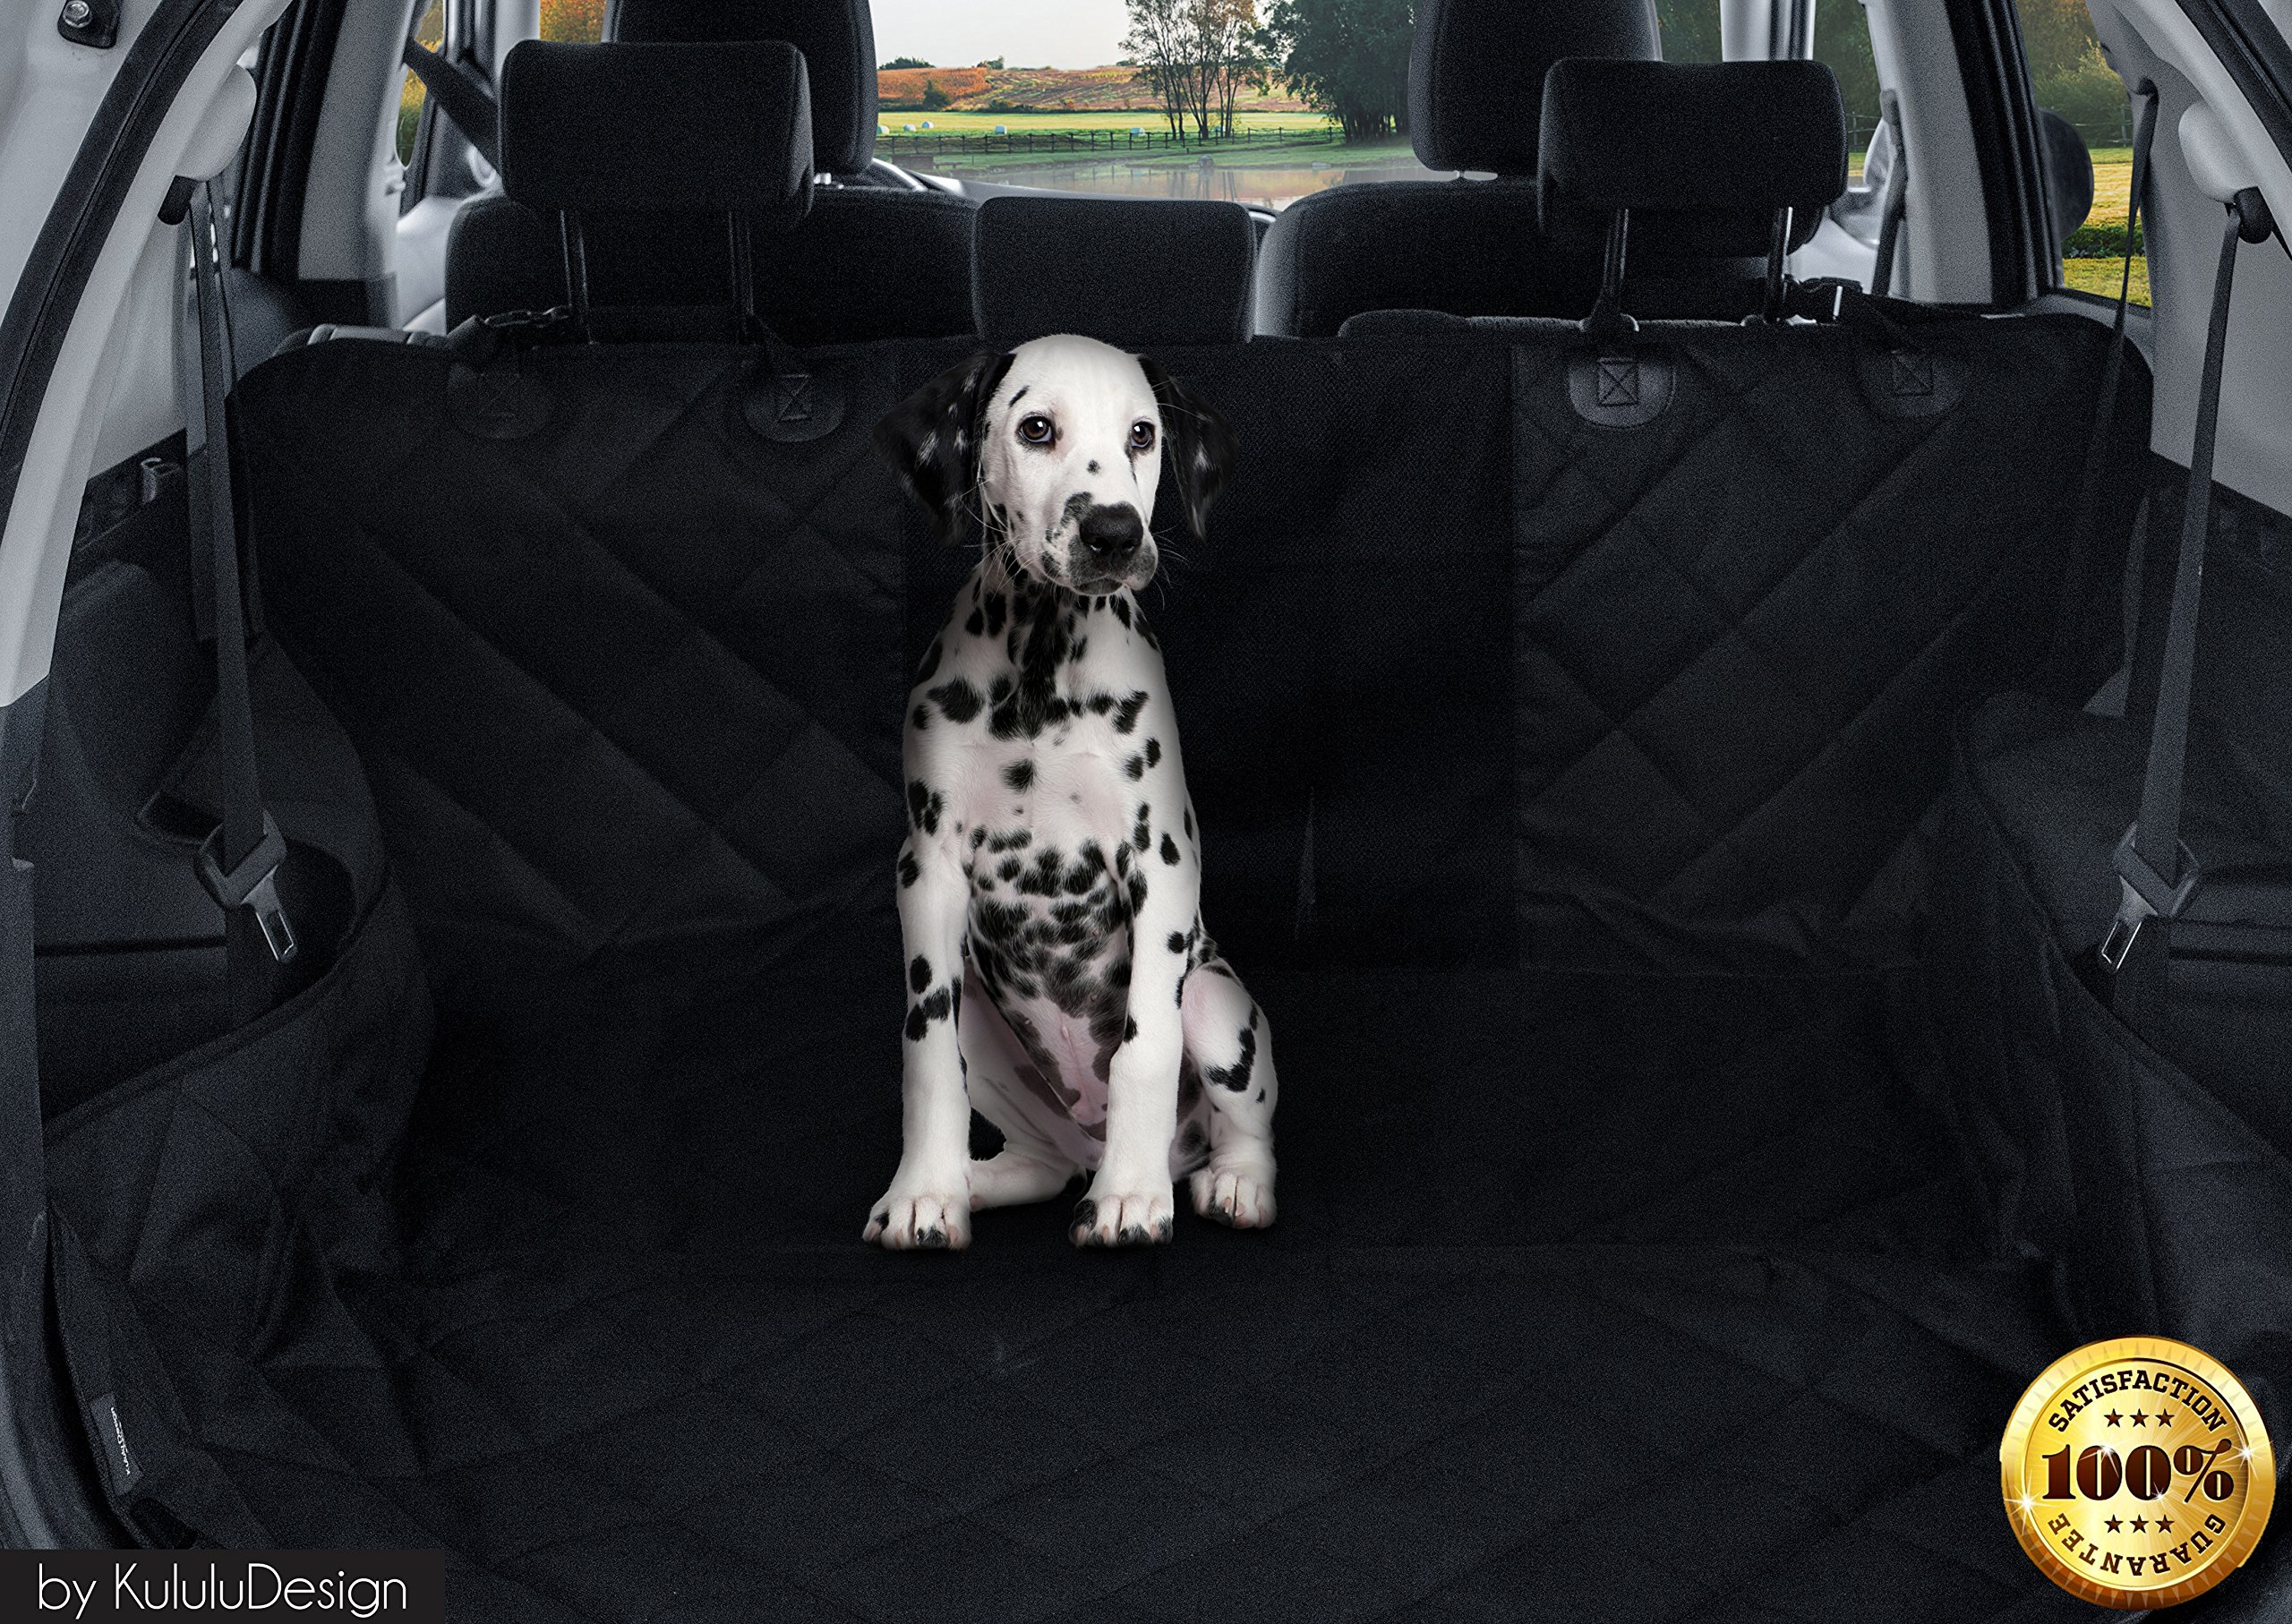 PREMIUM XL Dog Car Seat Cover Hammock Style And Cargo Liner For Cars, Trucks And Suv's. The Original Design You Can See Your Pet & Your Pet Sees You with the ClearView Window- Keeps Your Pet Calm. by Kululu (Image #8)